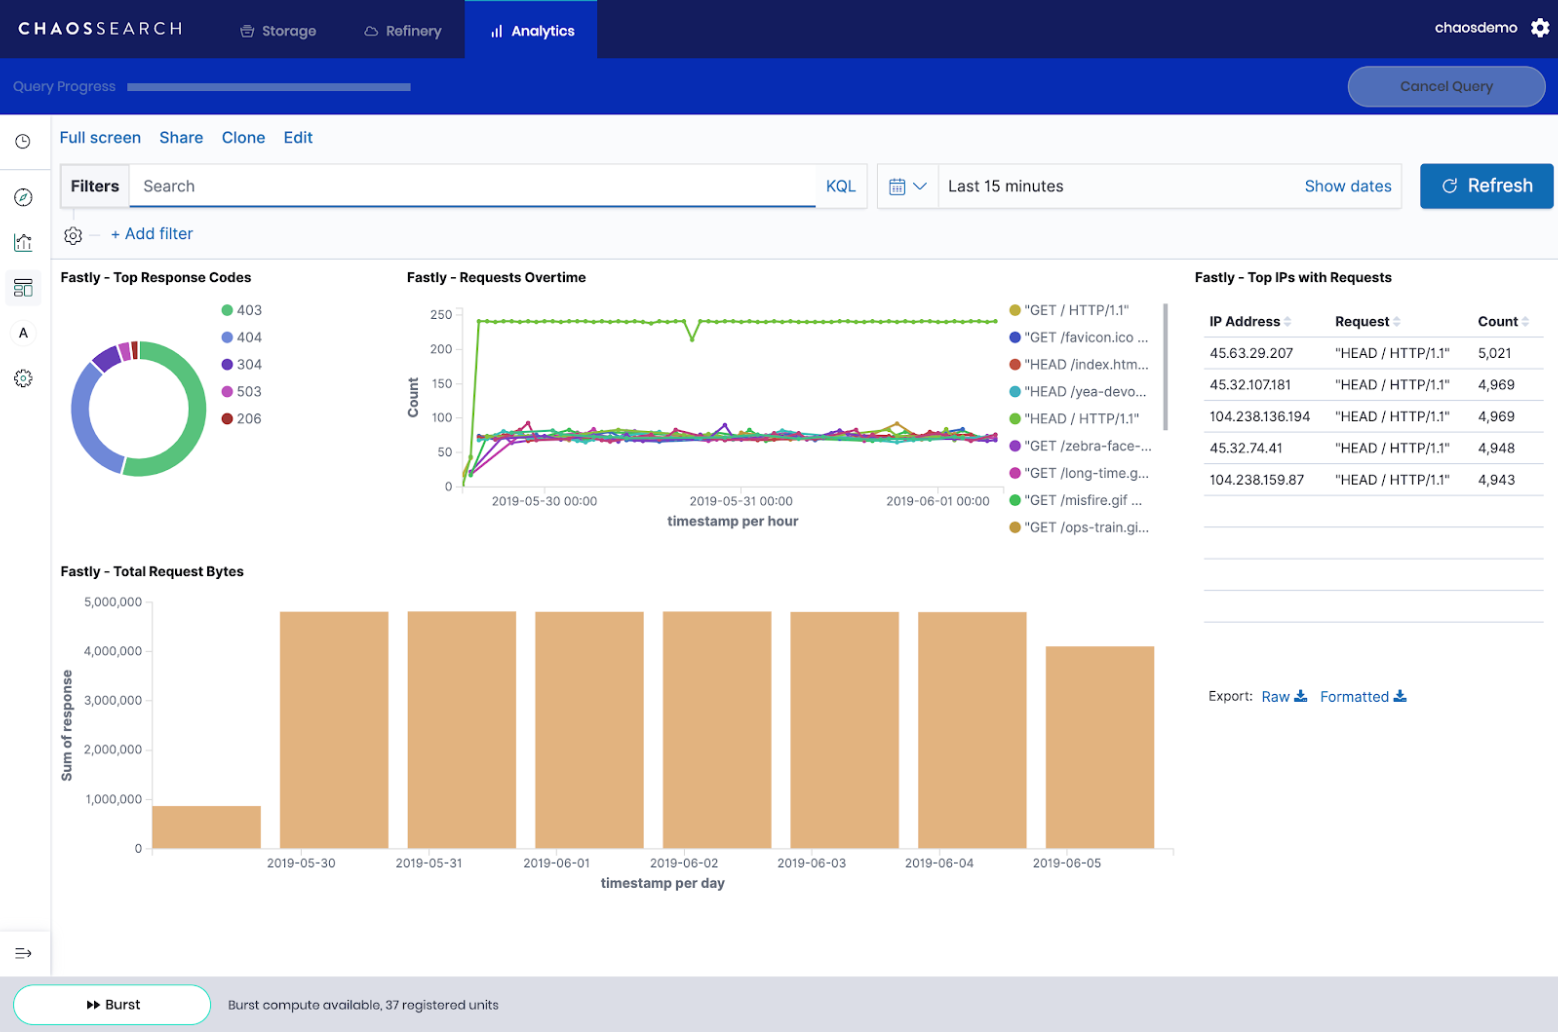 CHAOSSEARCH dashboard with fastly data